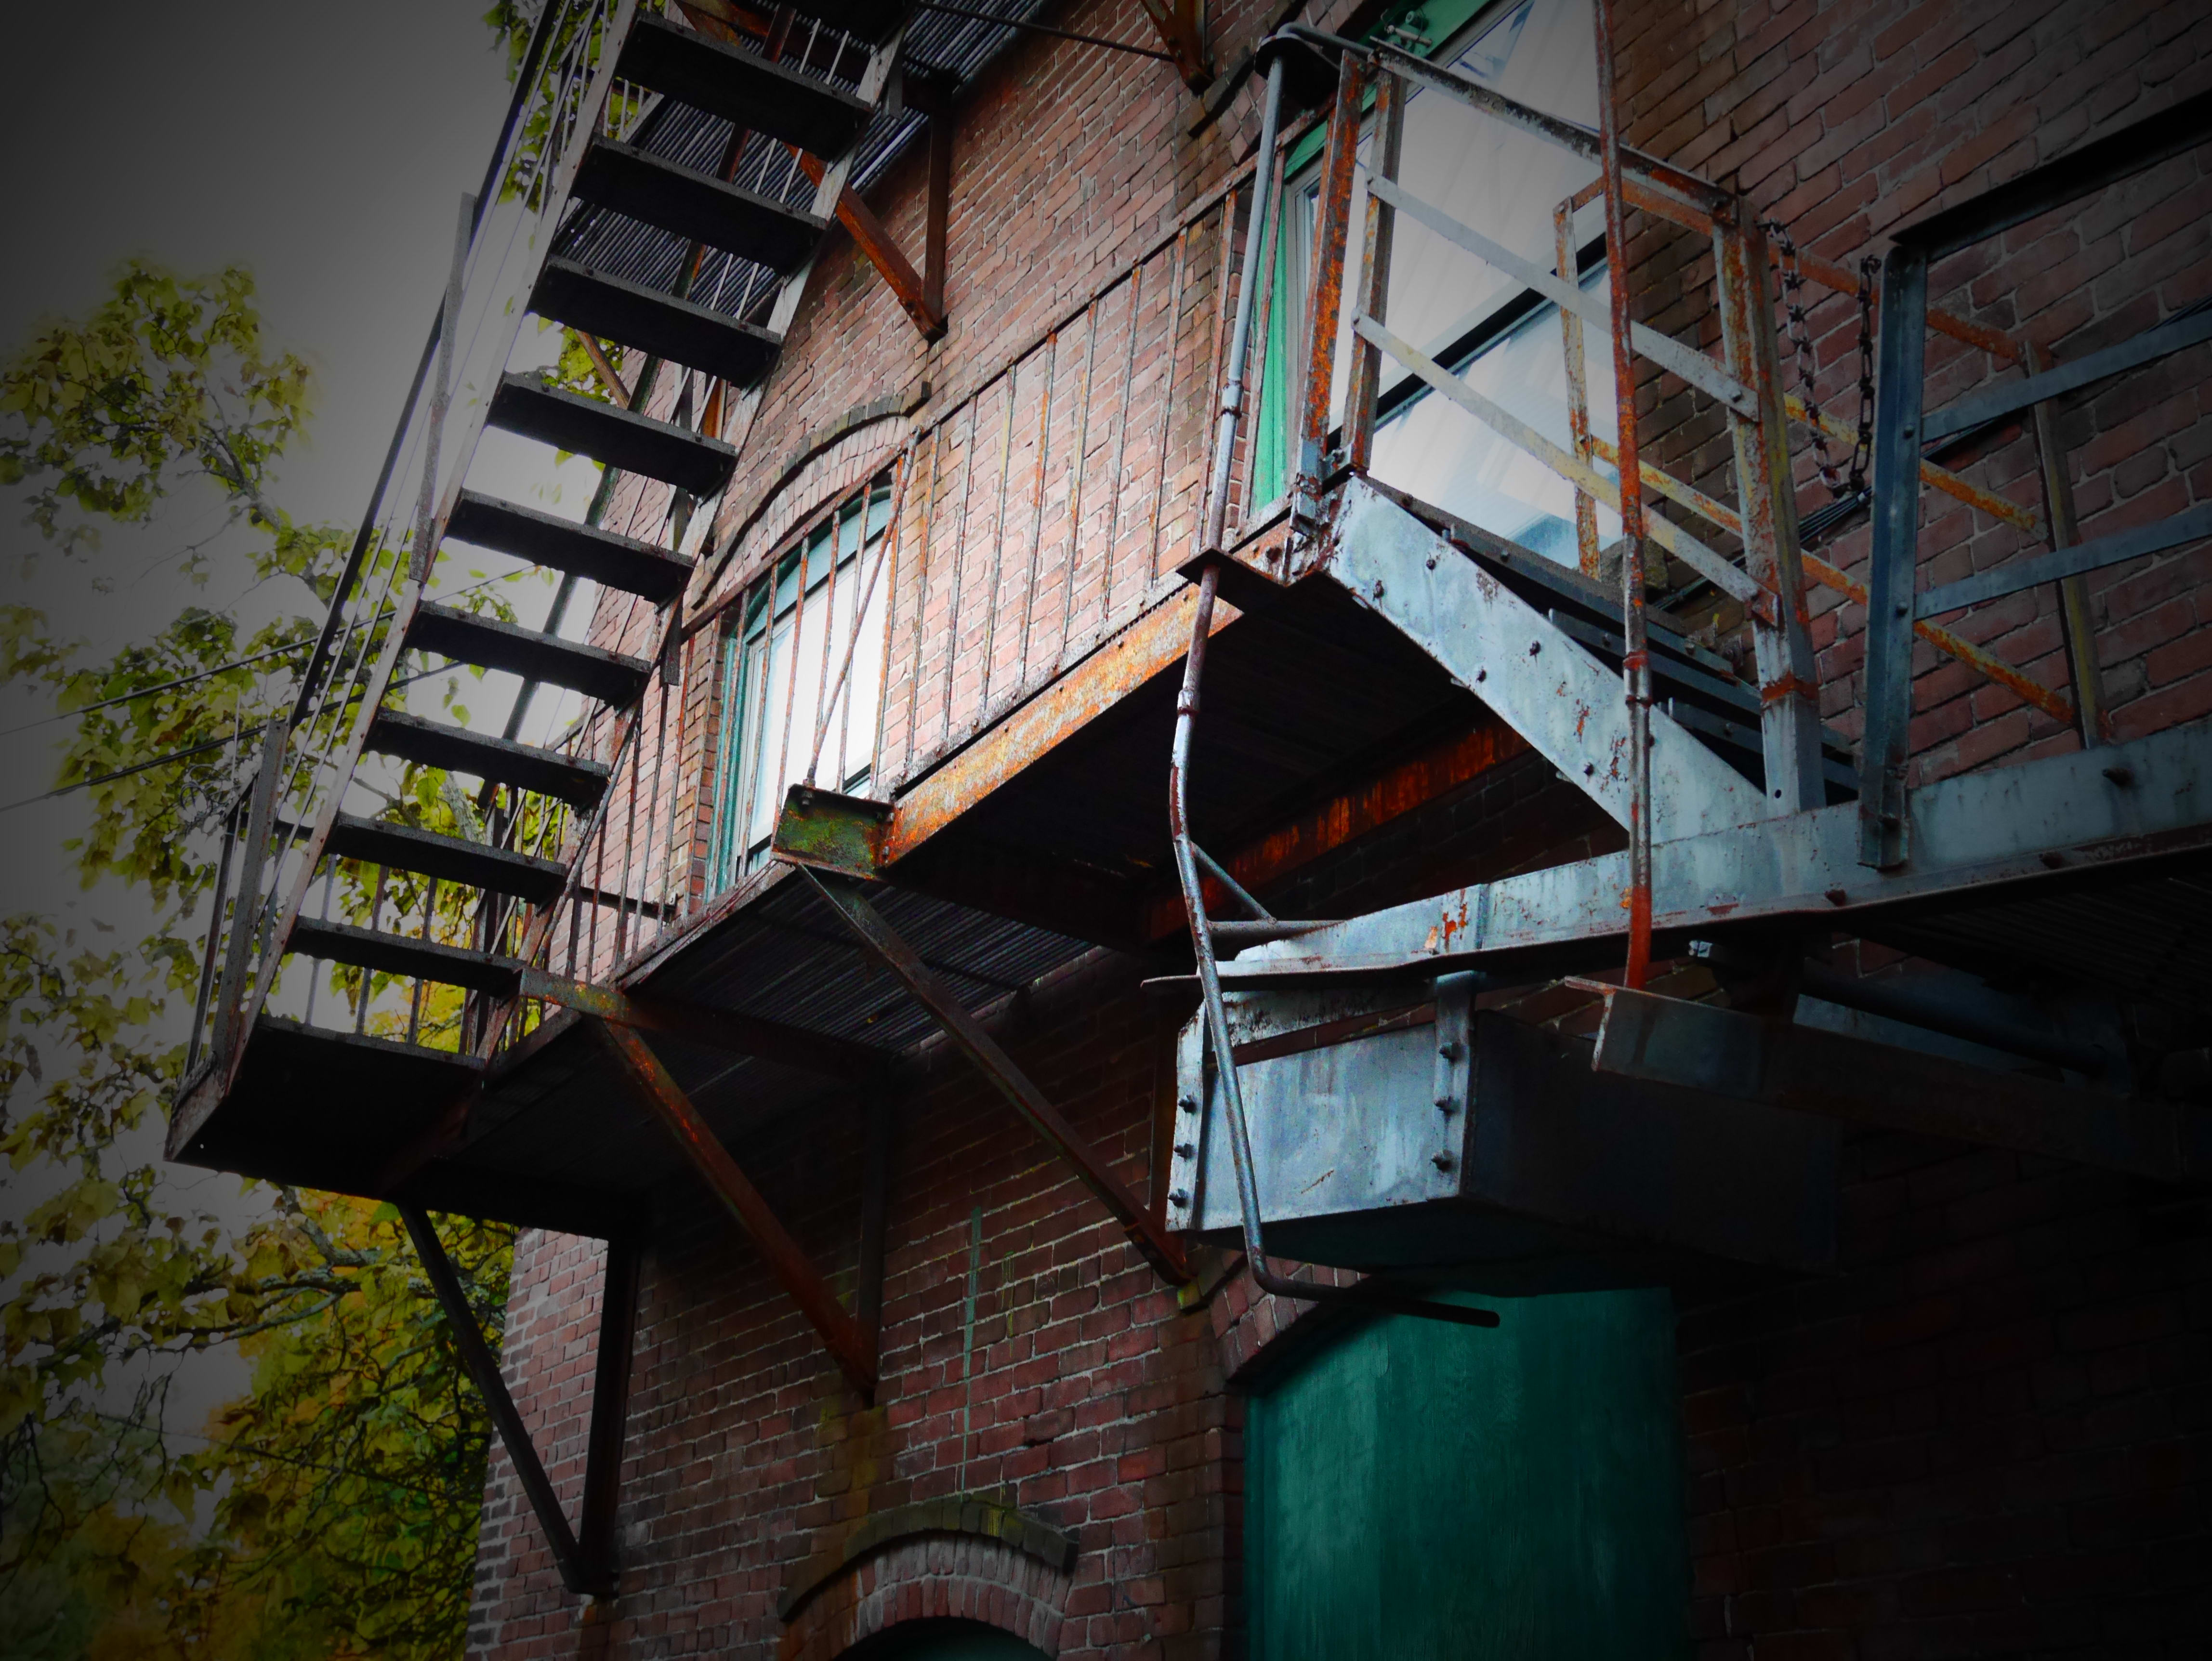 A photo of a fire escape shot by the Panasonic Lumix GM5